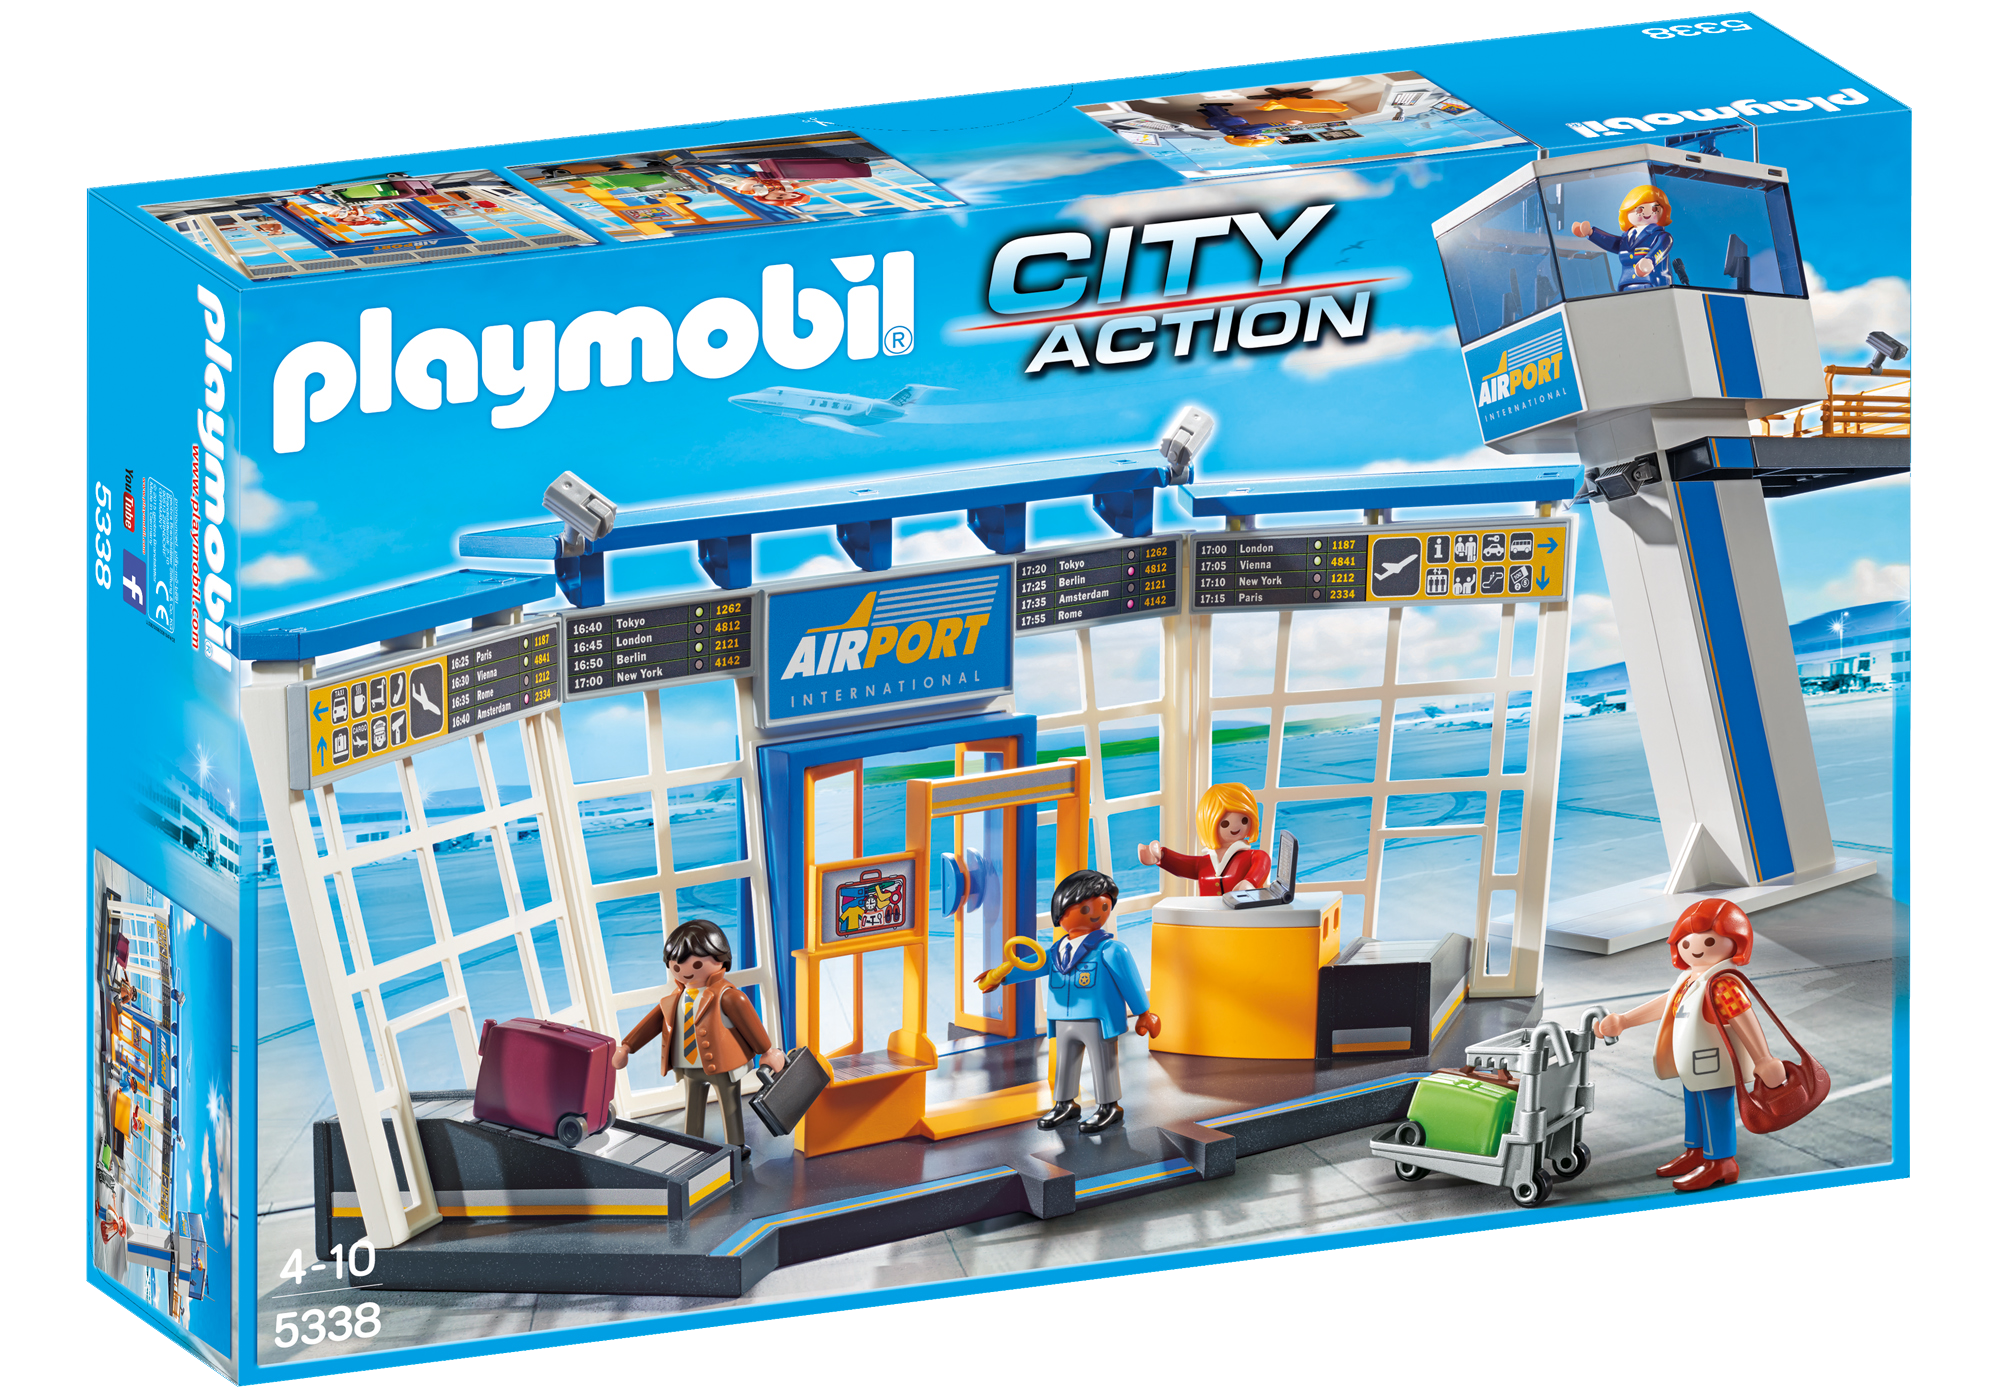 A Playmobil Airport